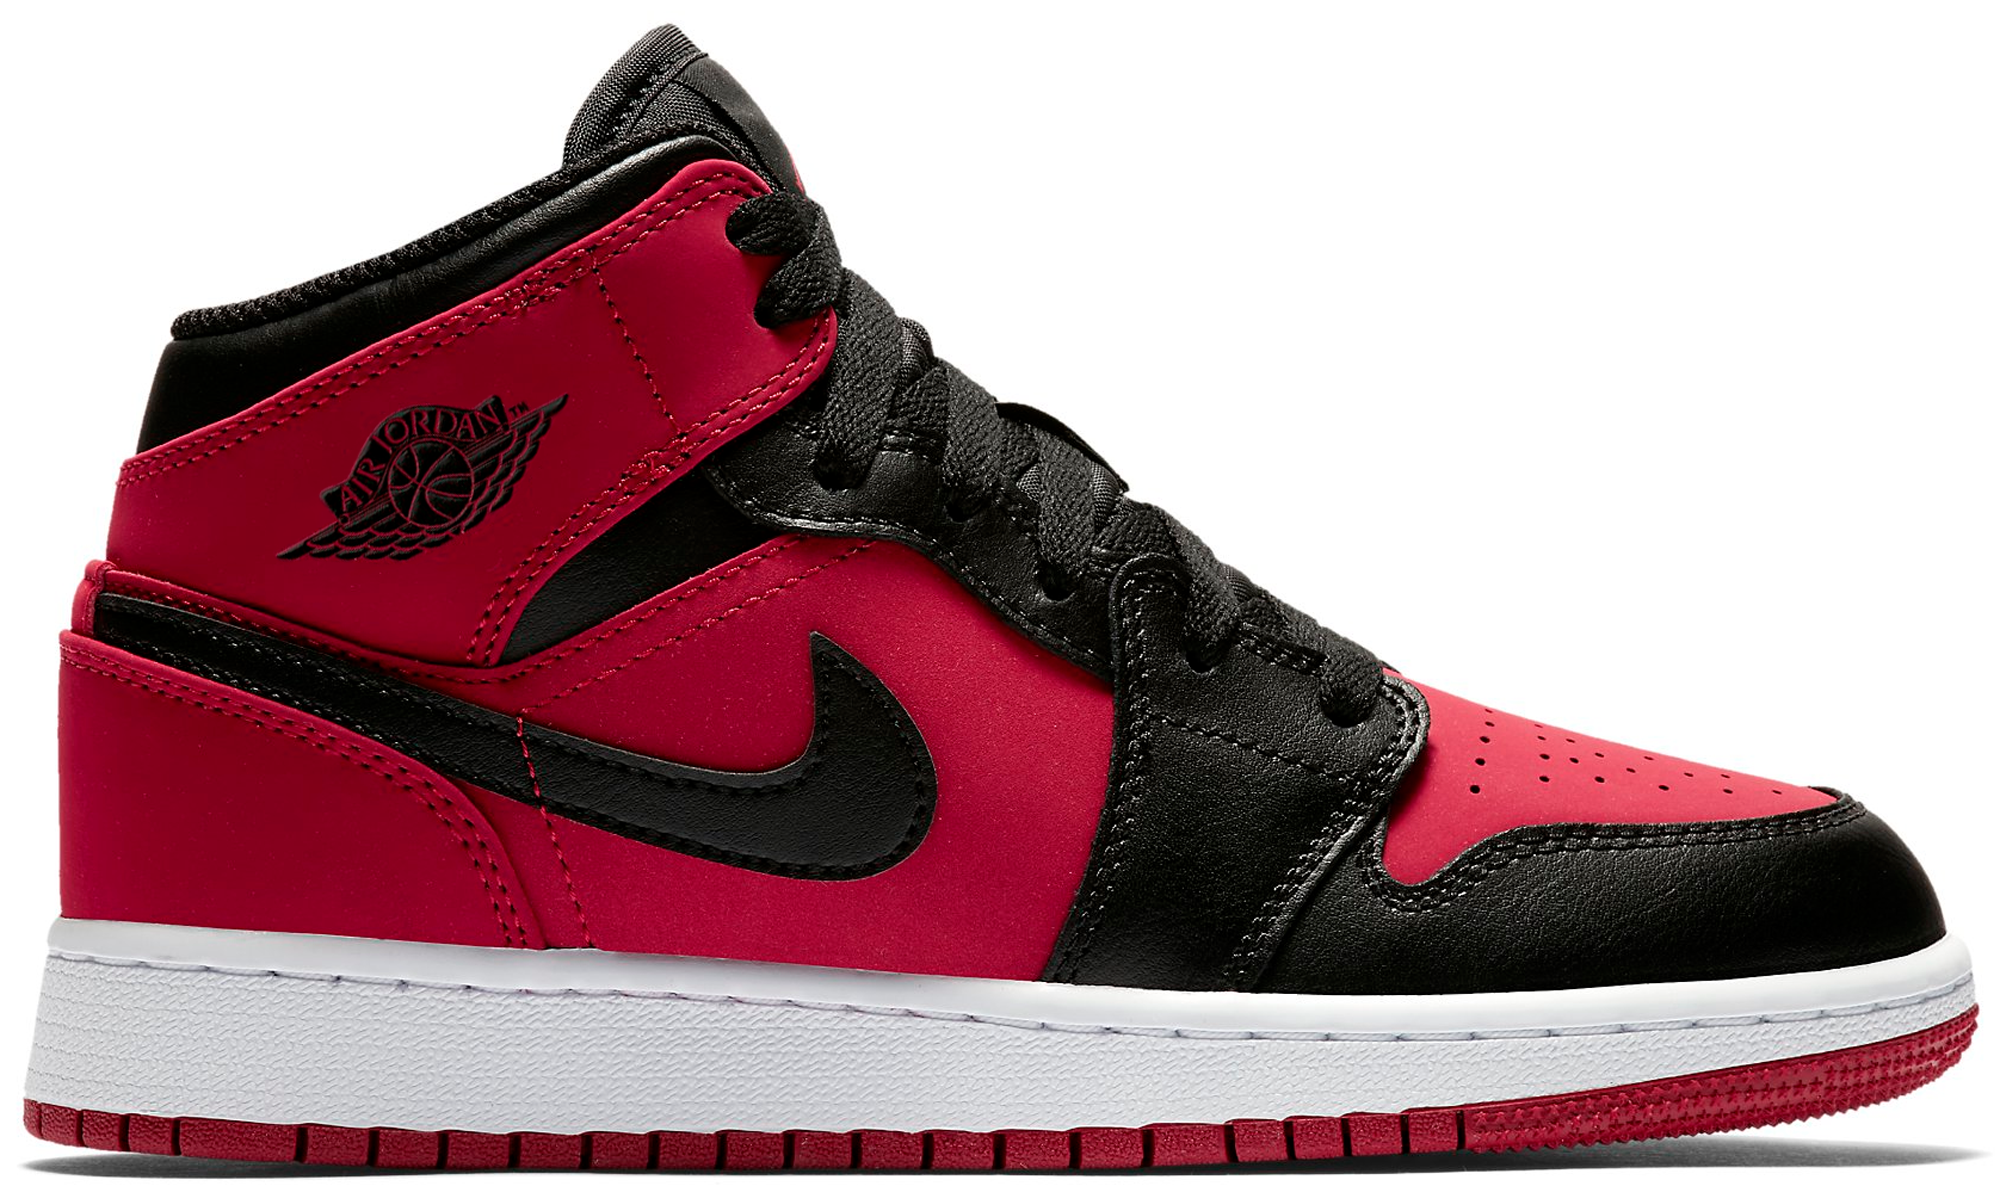 Jordan 1 Mid Gym Red Black